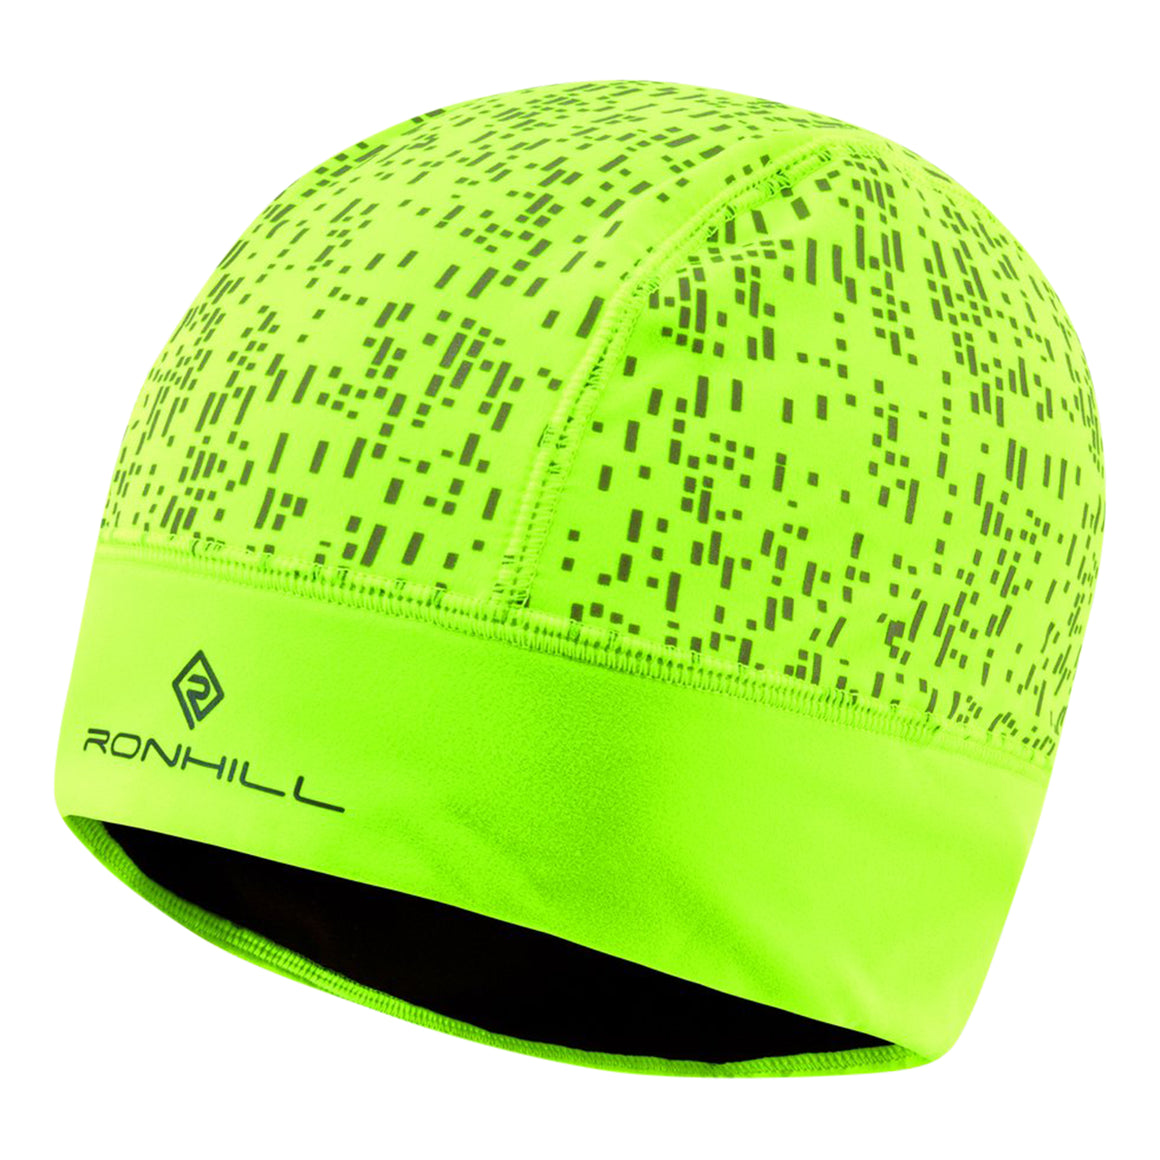 Nightrunner Beanie Hat for Adults in Fluo Yellow/Reflect